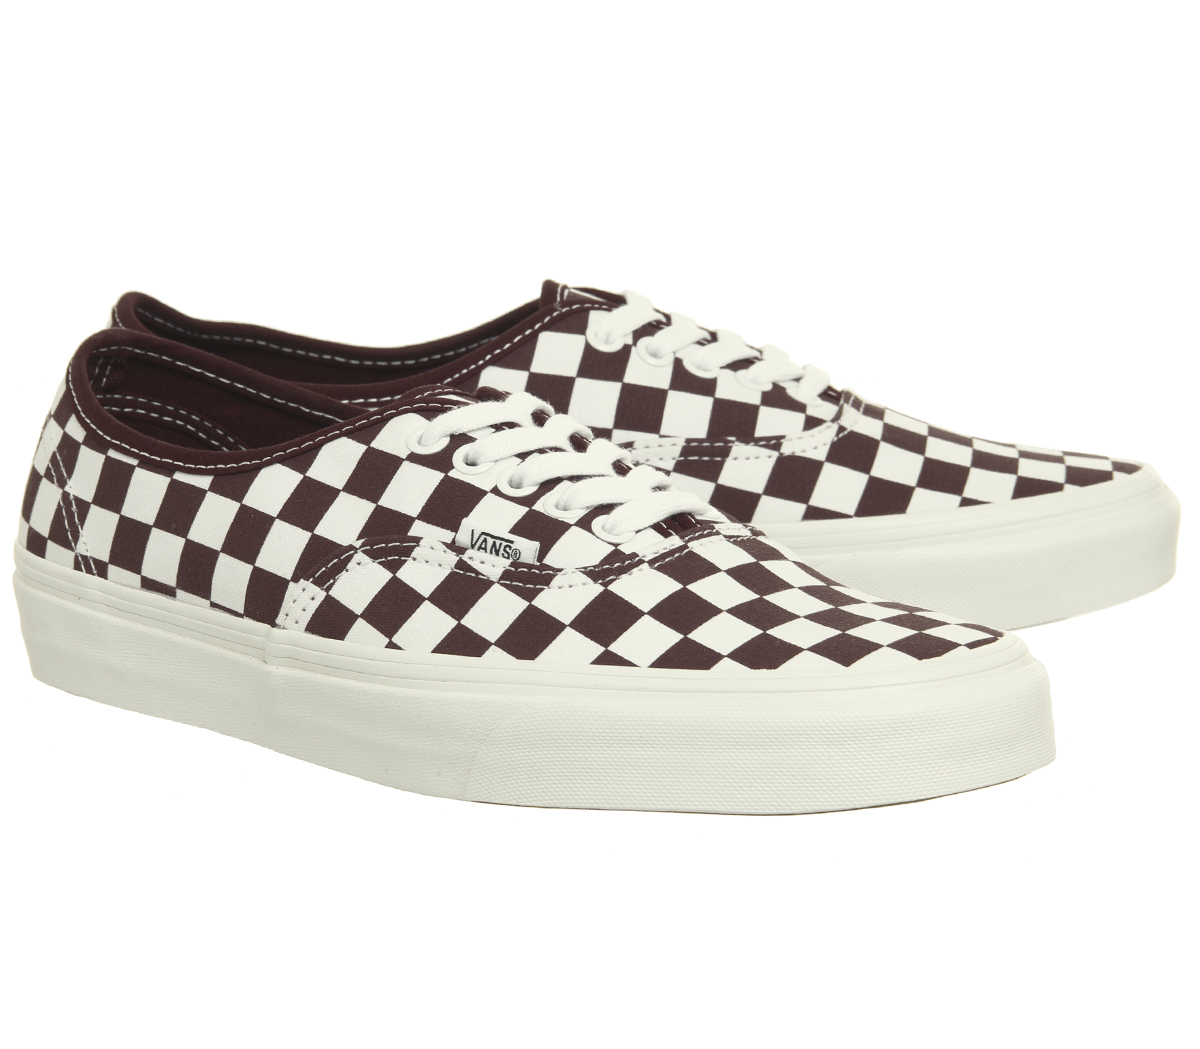 cbfbf66705 Mens Vans Authentic Trainers Port Royale Marshmellow Checkerboard ...